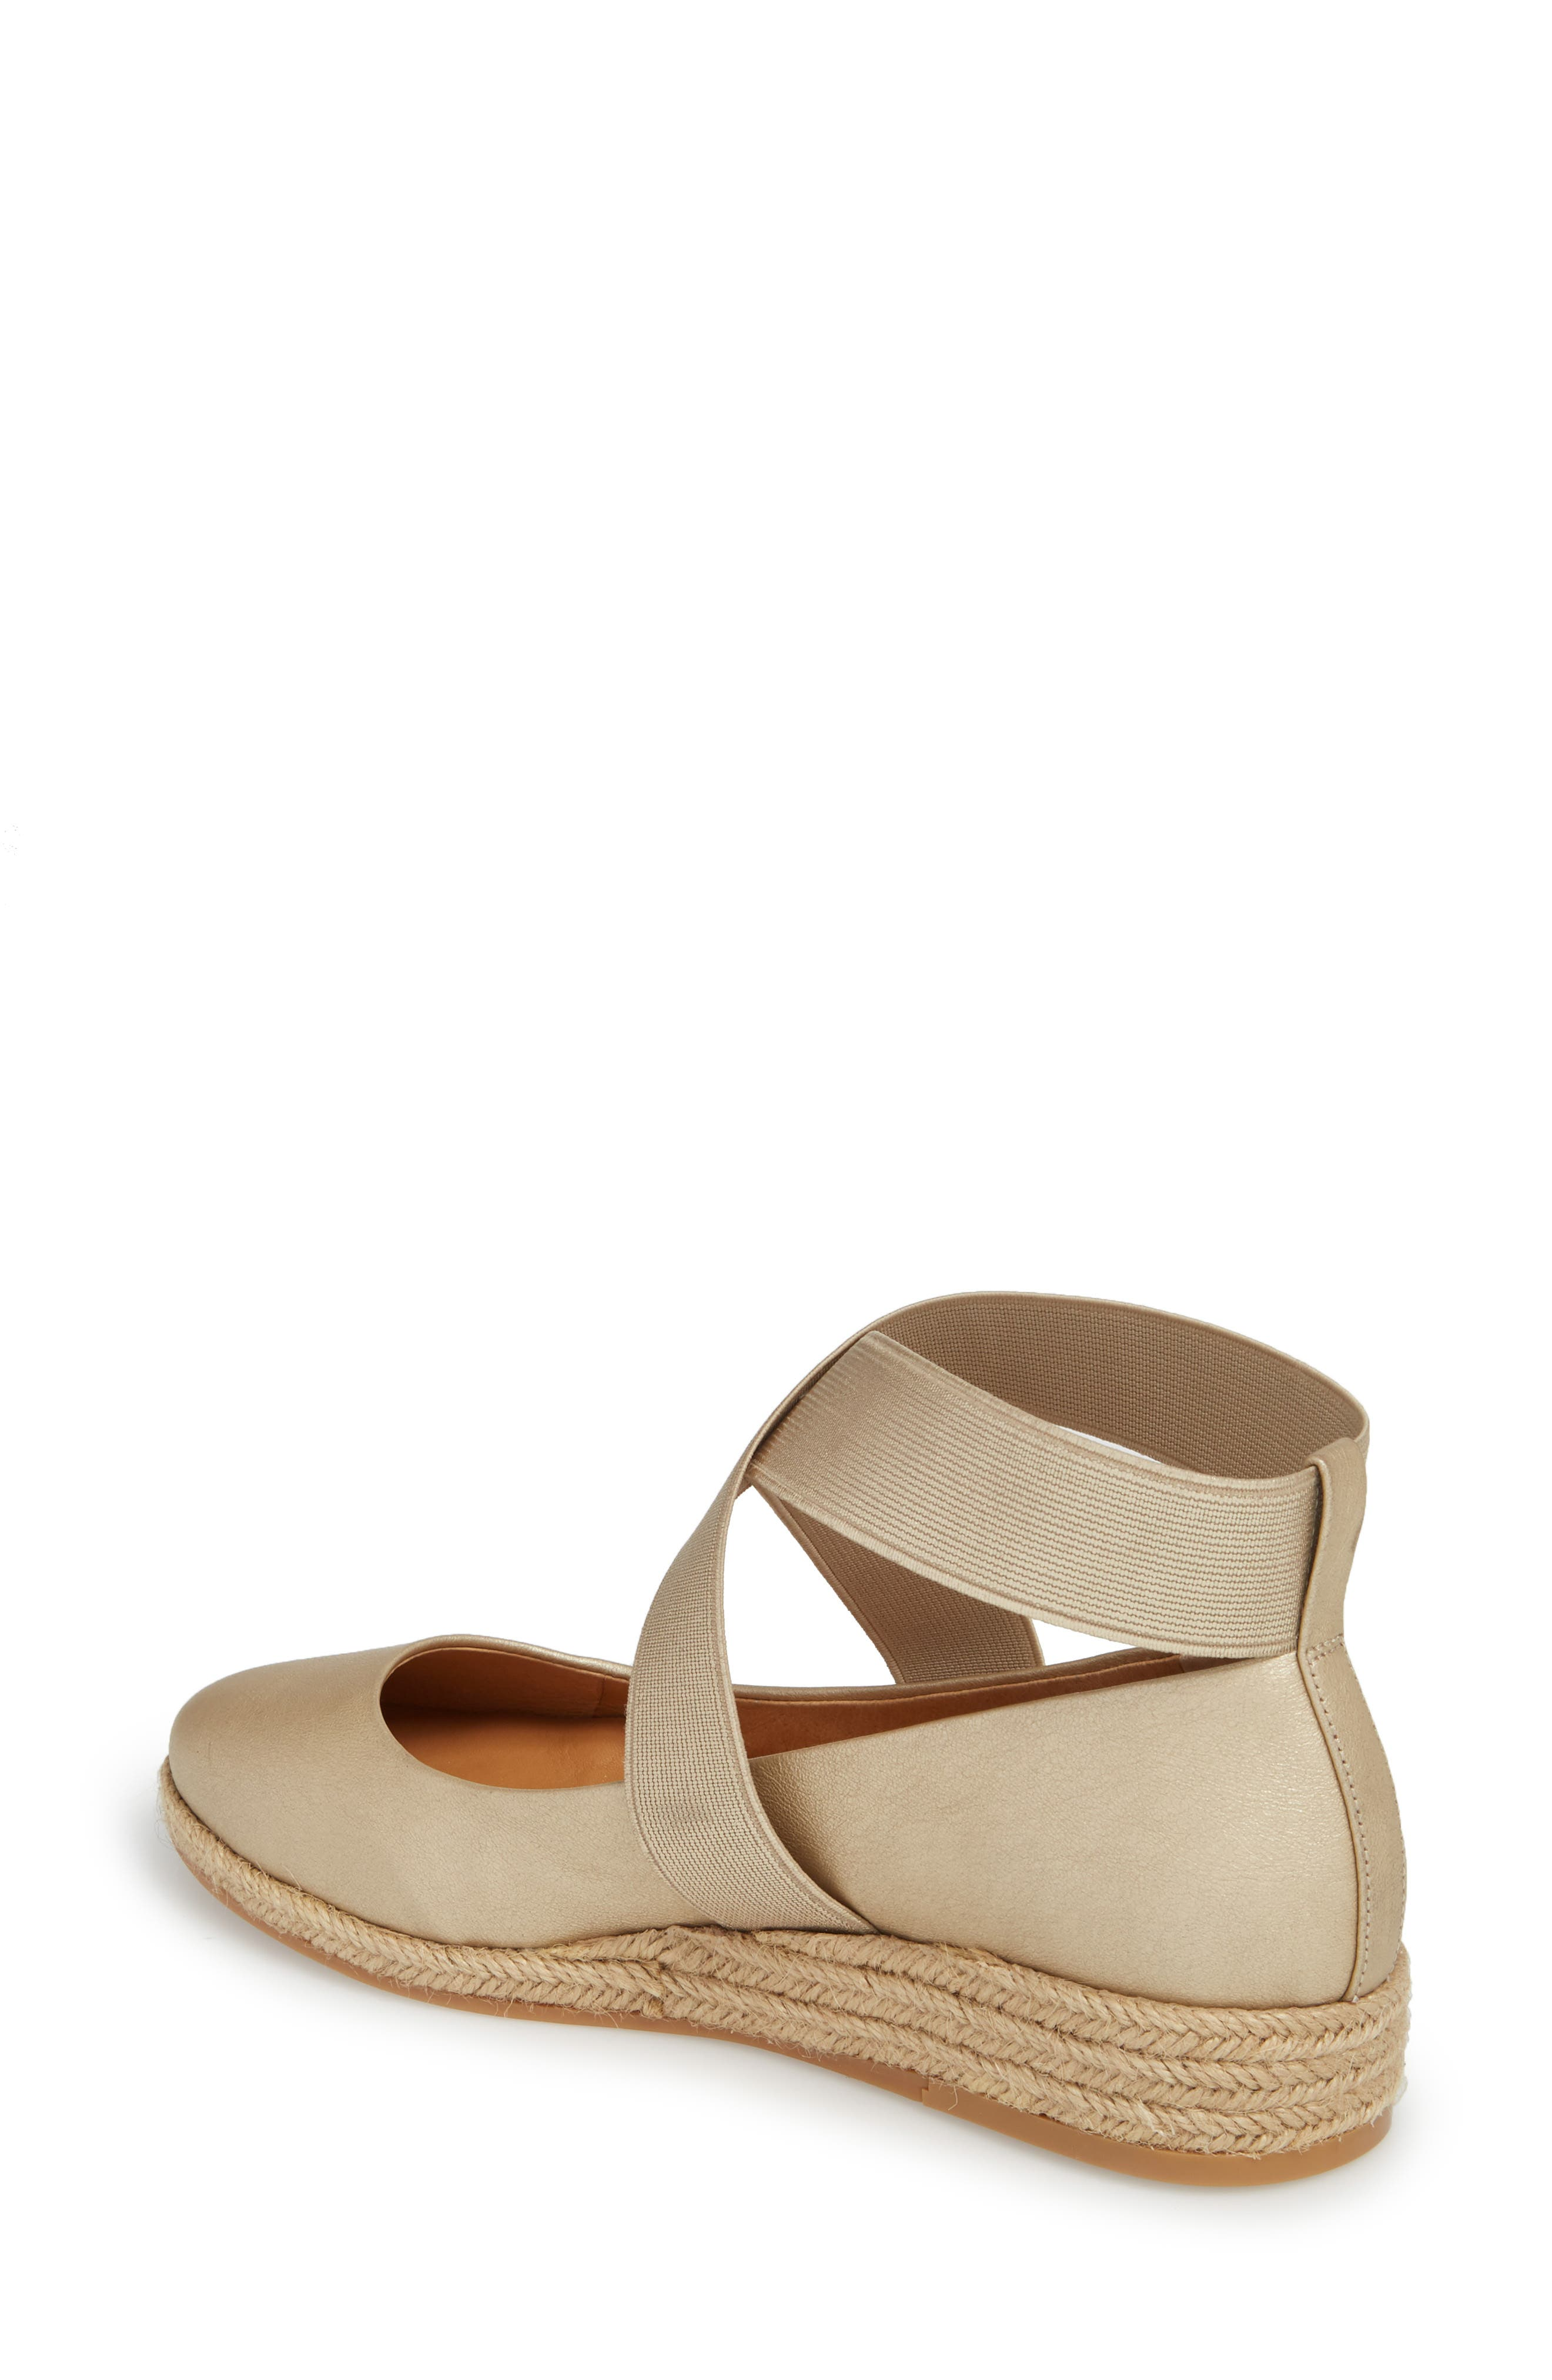 Bellah Espadrille Wedge,                             Alternate thumbnail 2, color,                             Soft Gold Leather